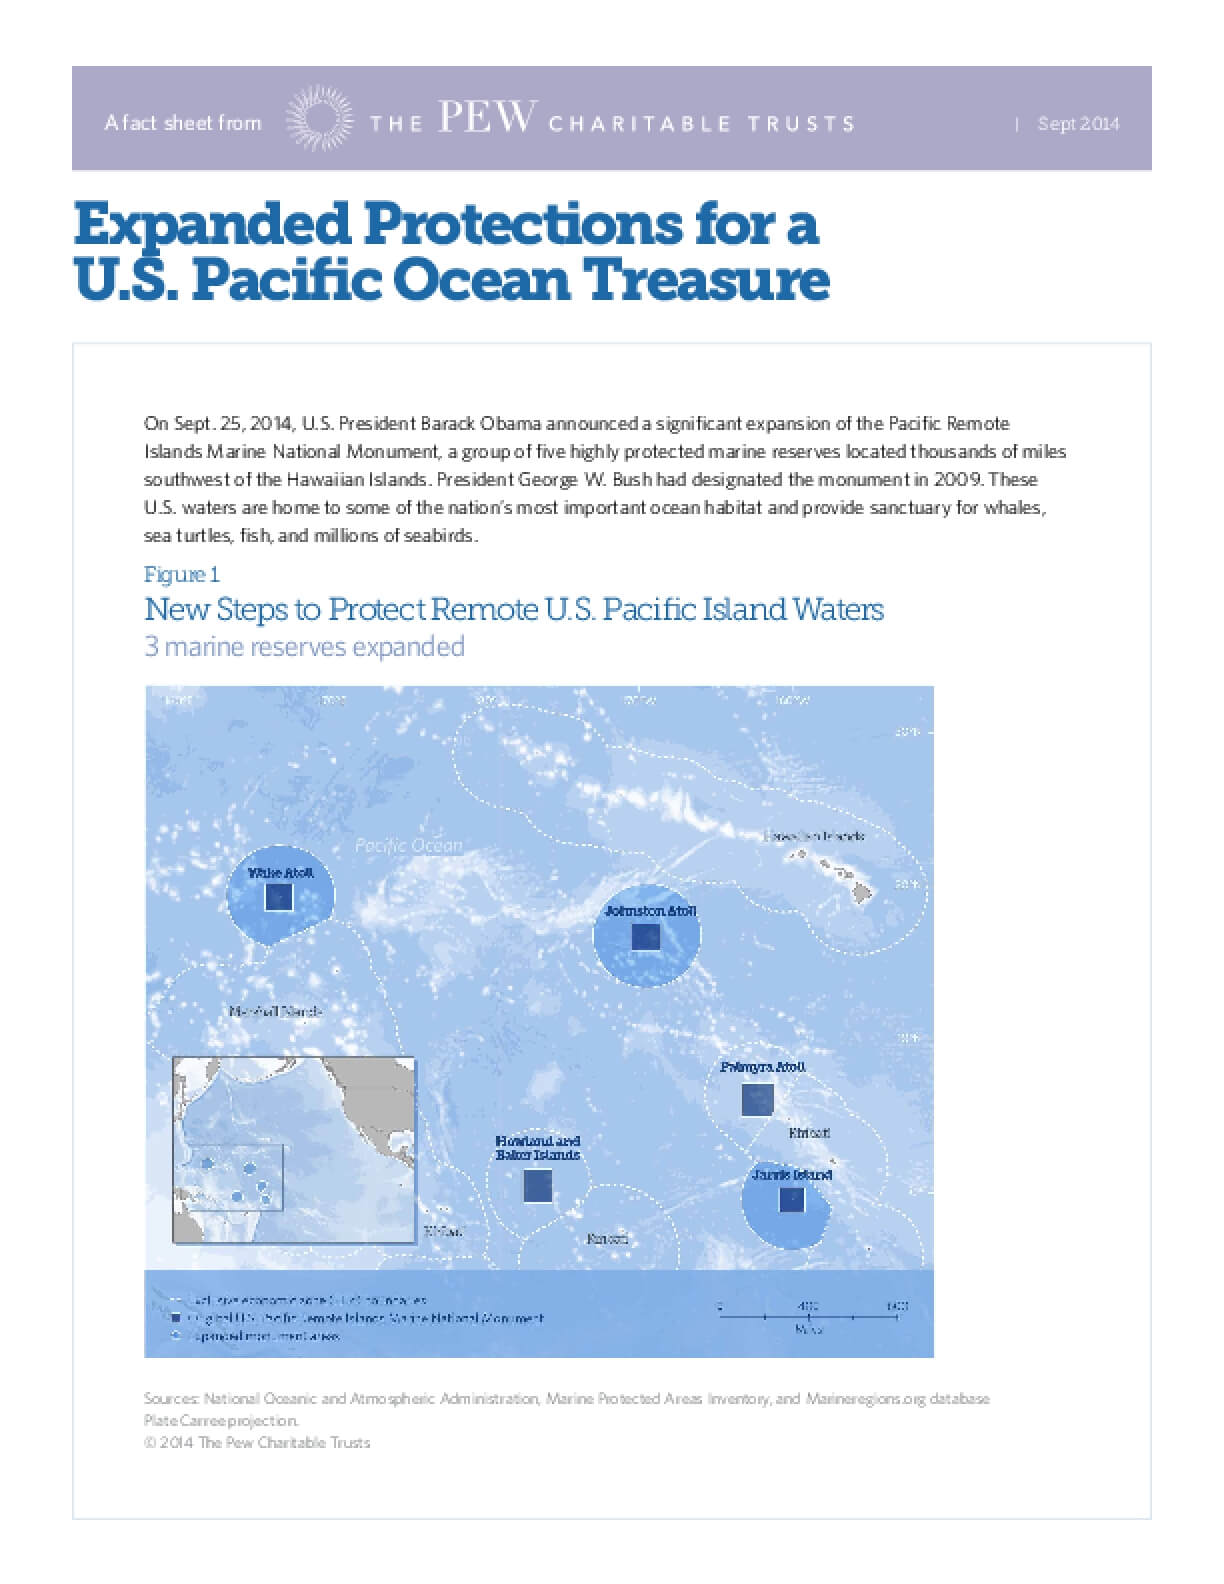 Expanded Protections for a U.S. Pacific Ocean Treasure